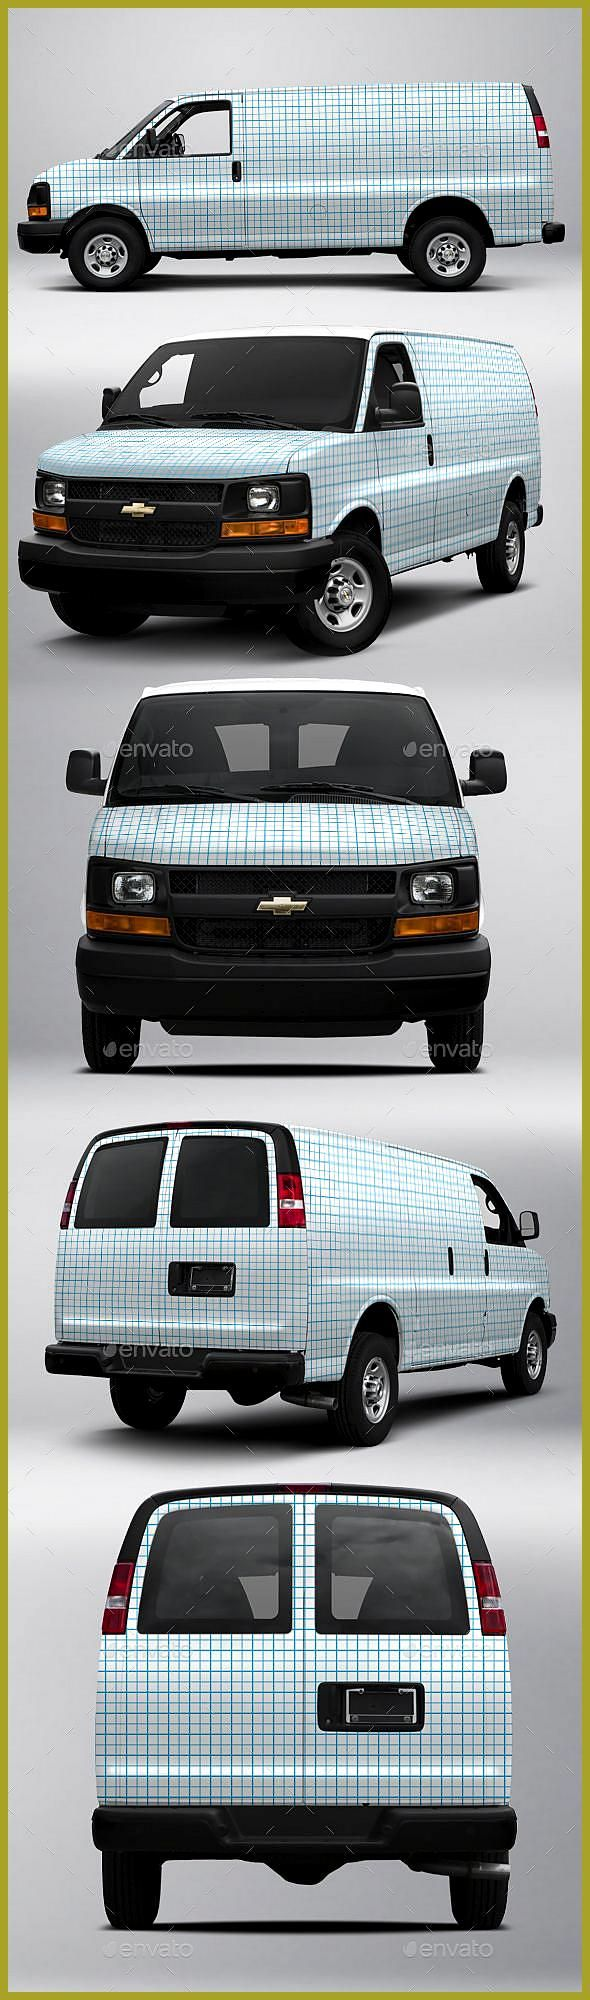 2017 Chevy Express 2500 Cargo Van Wrap Mock-up is a fully layered Photoshop PSD file that allows yo